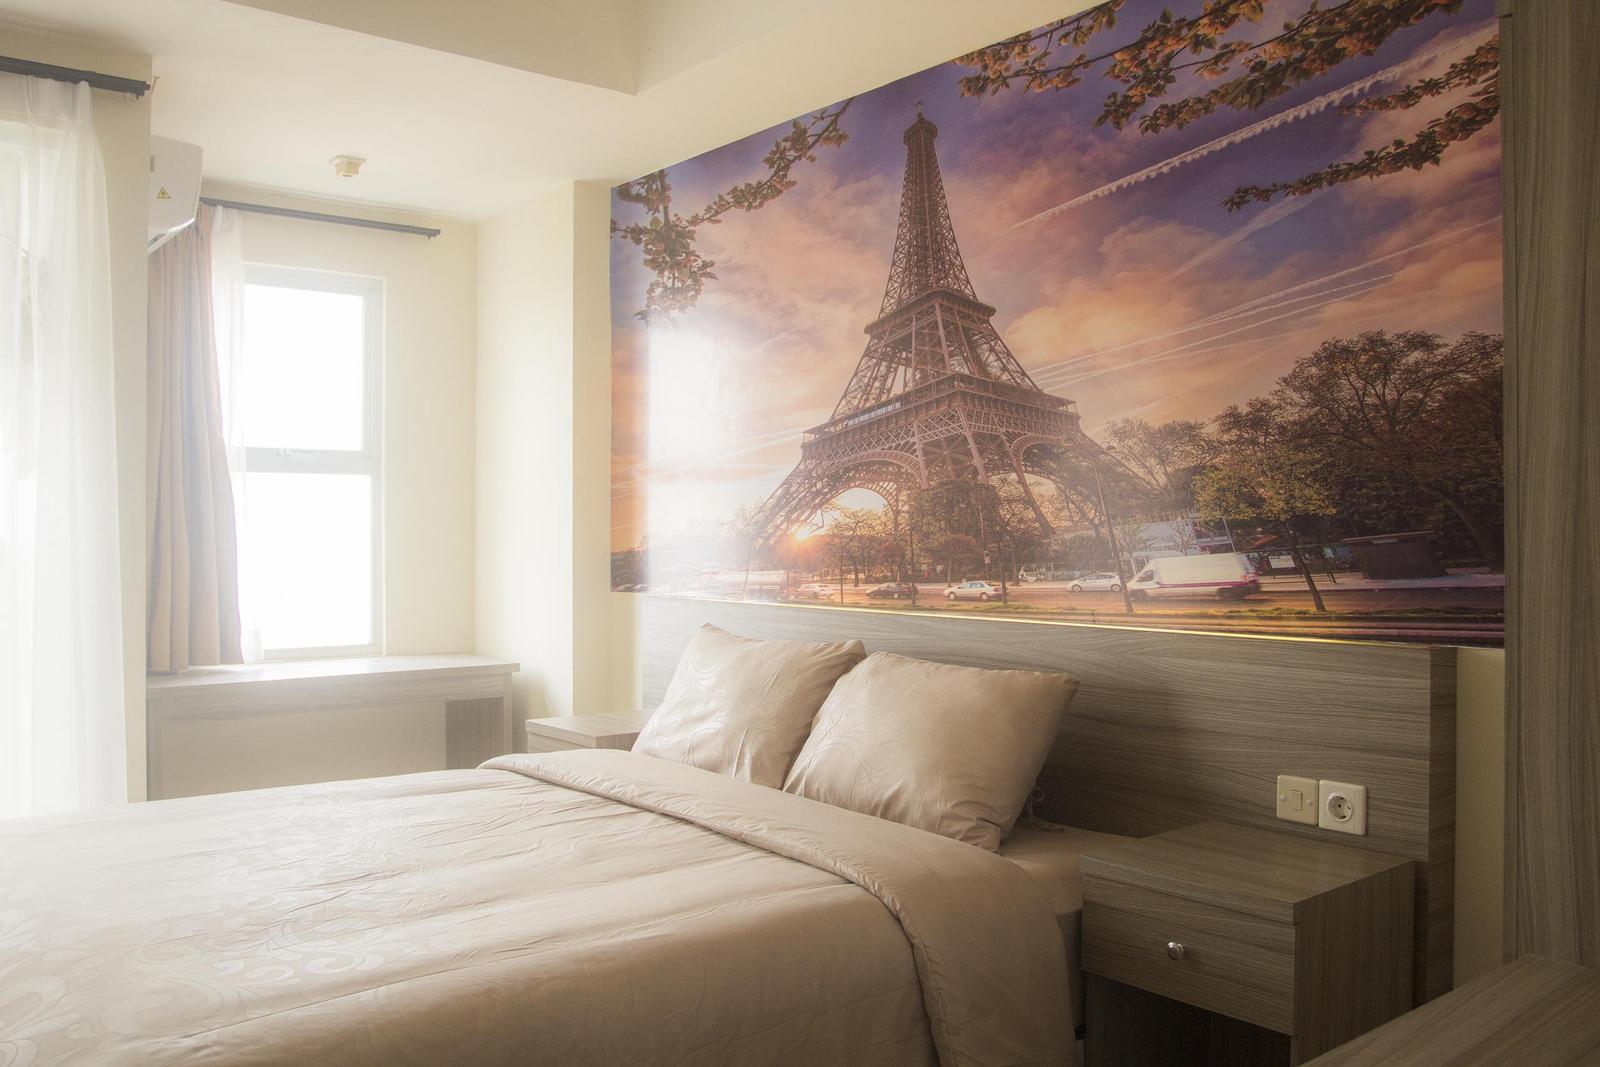 Belmont Residence Puri - Dream of Paris Studio Room at Belmont Residence Apartment